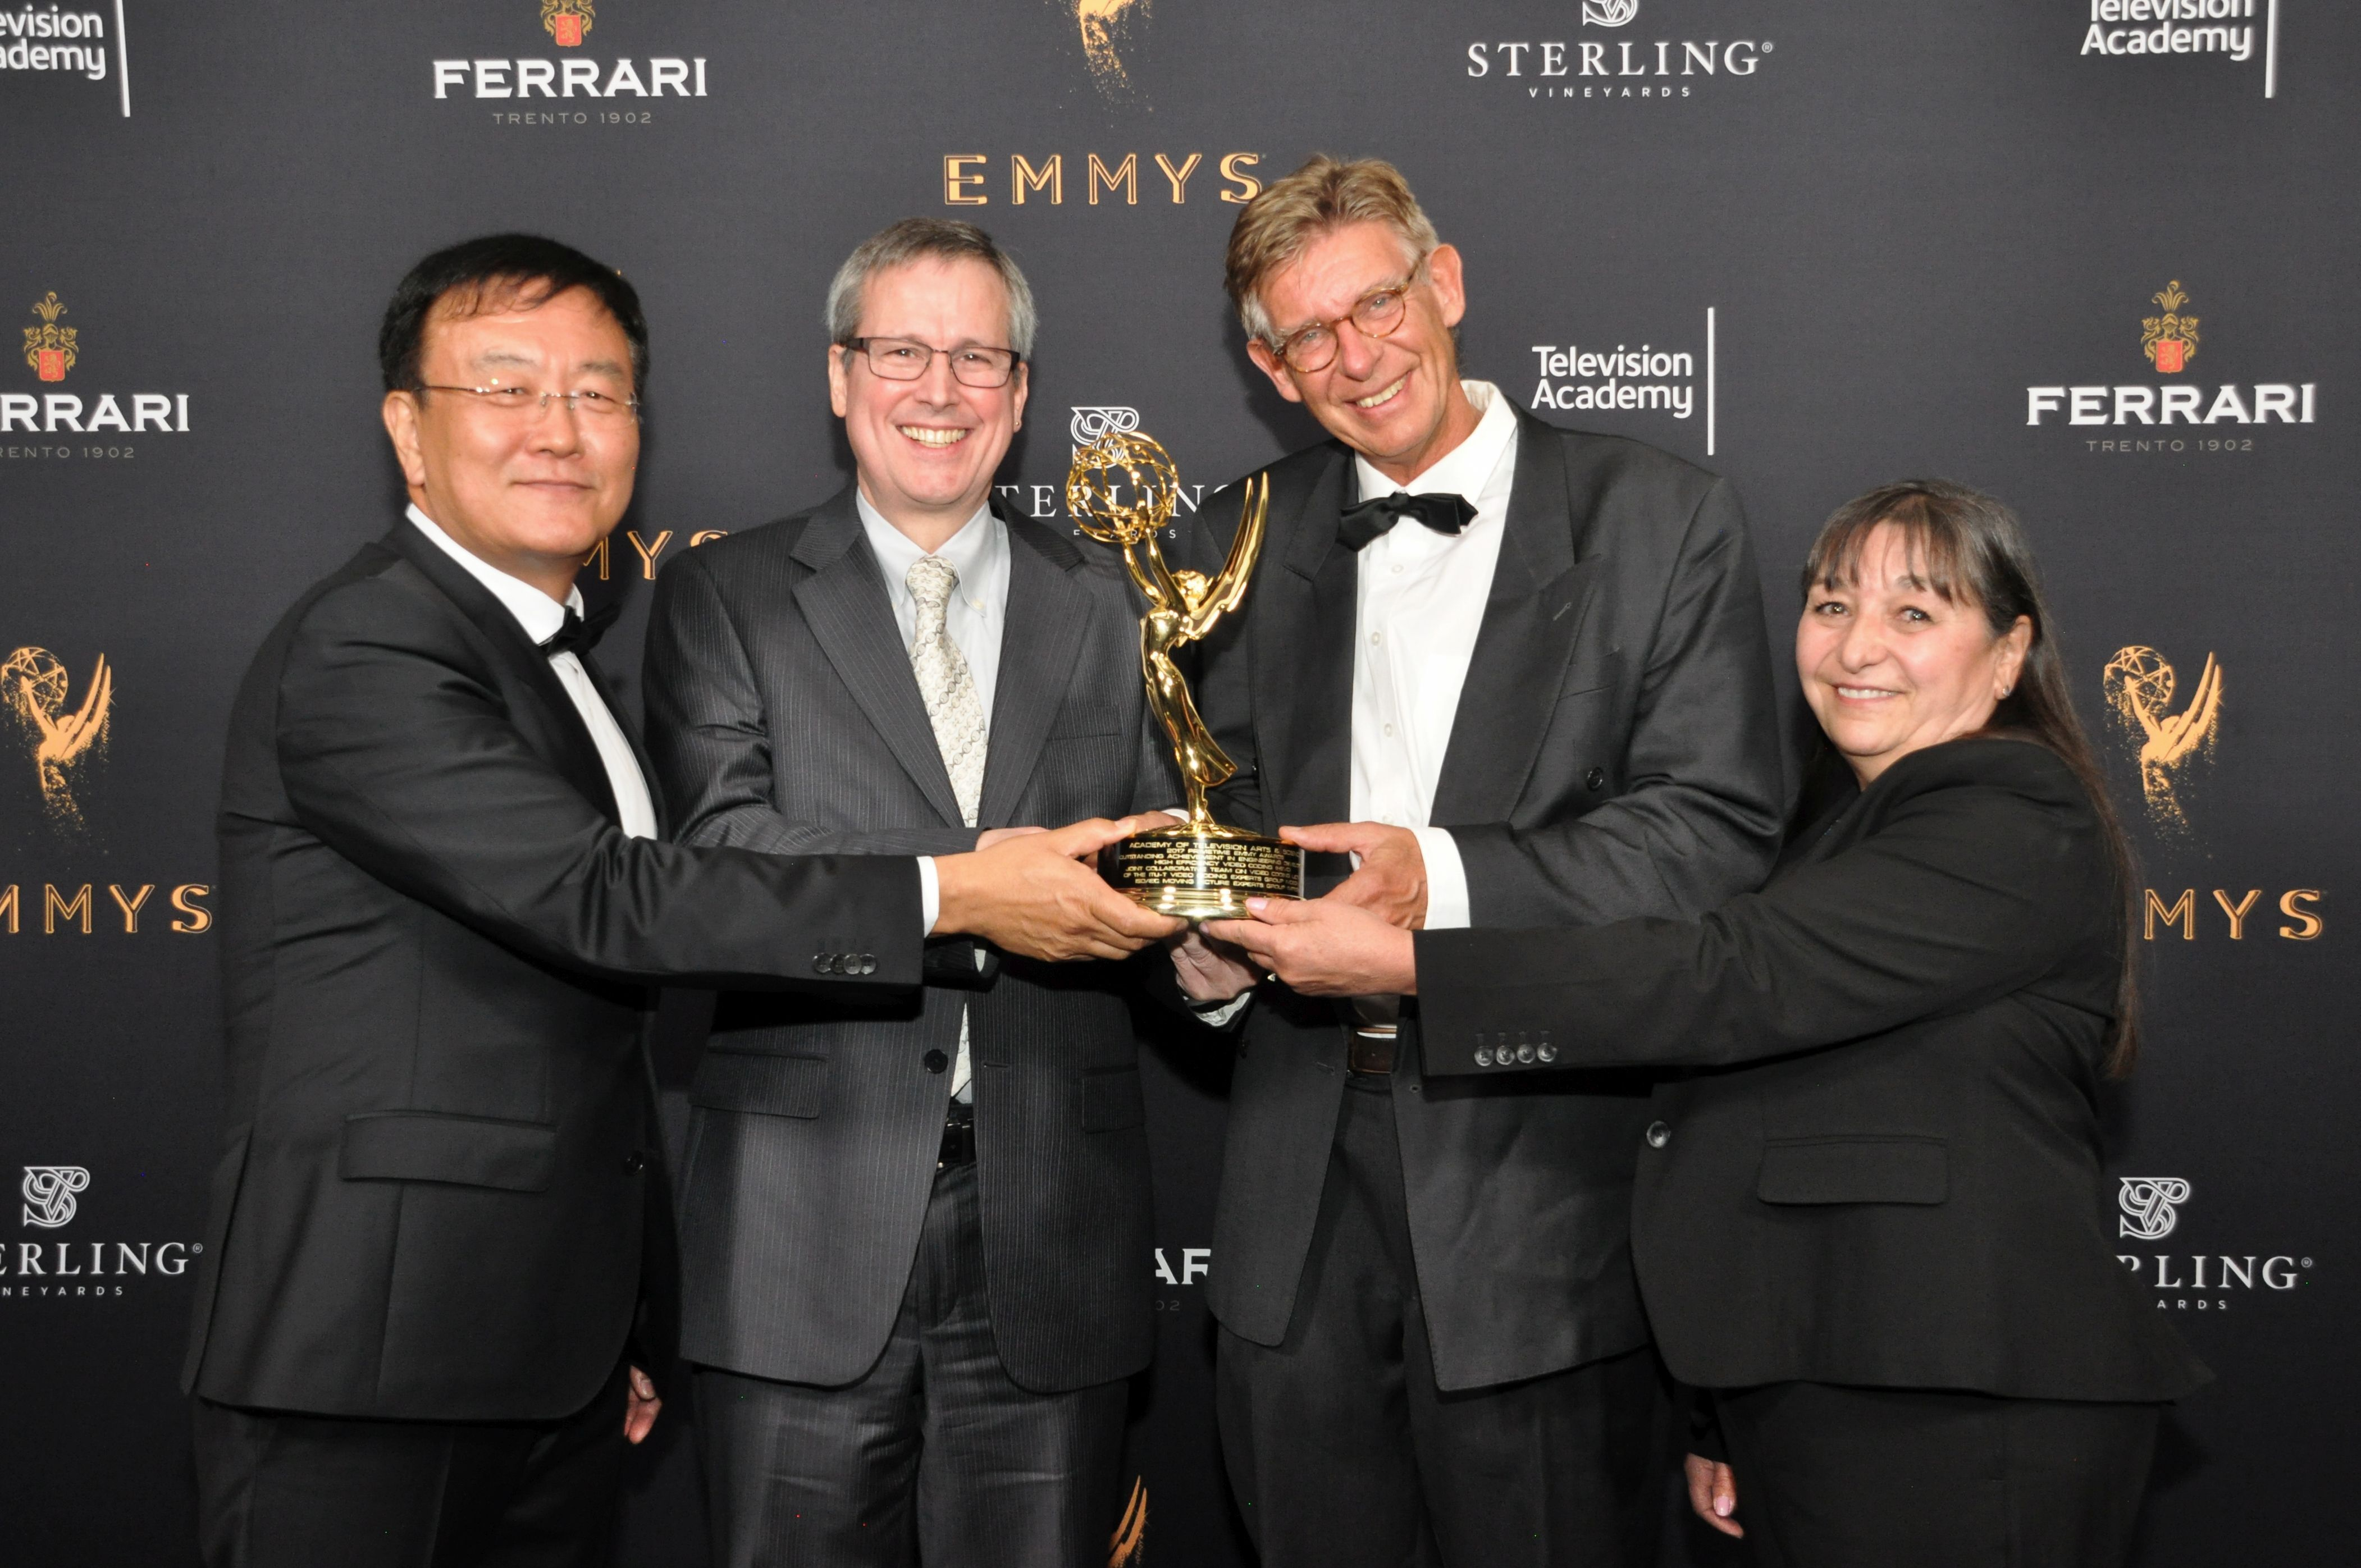 Professor Ohm gewinnt Engineering Emmy Award